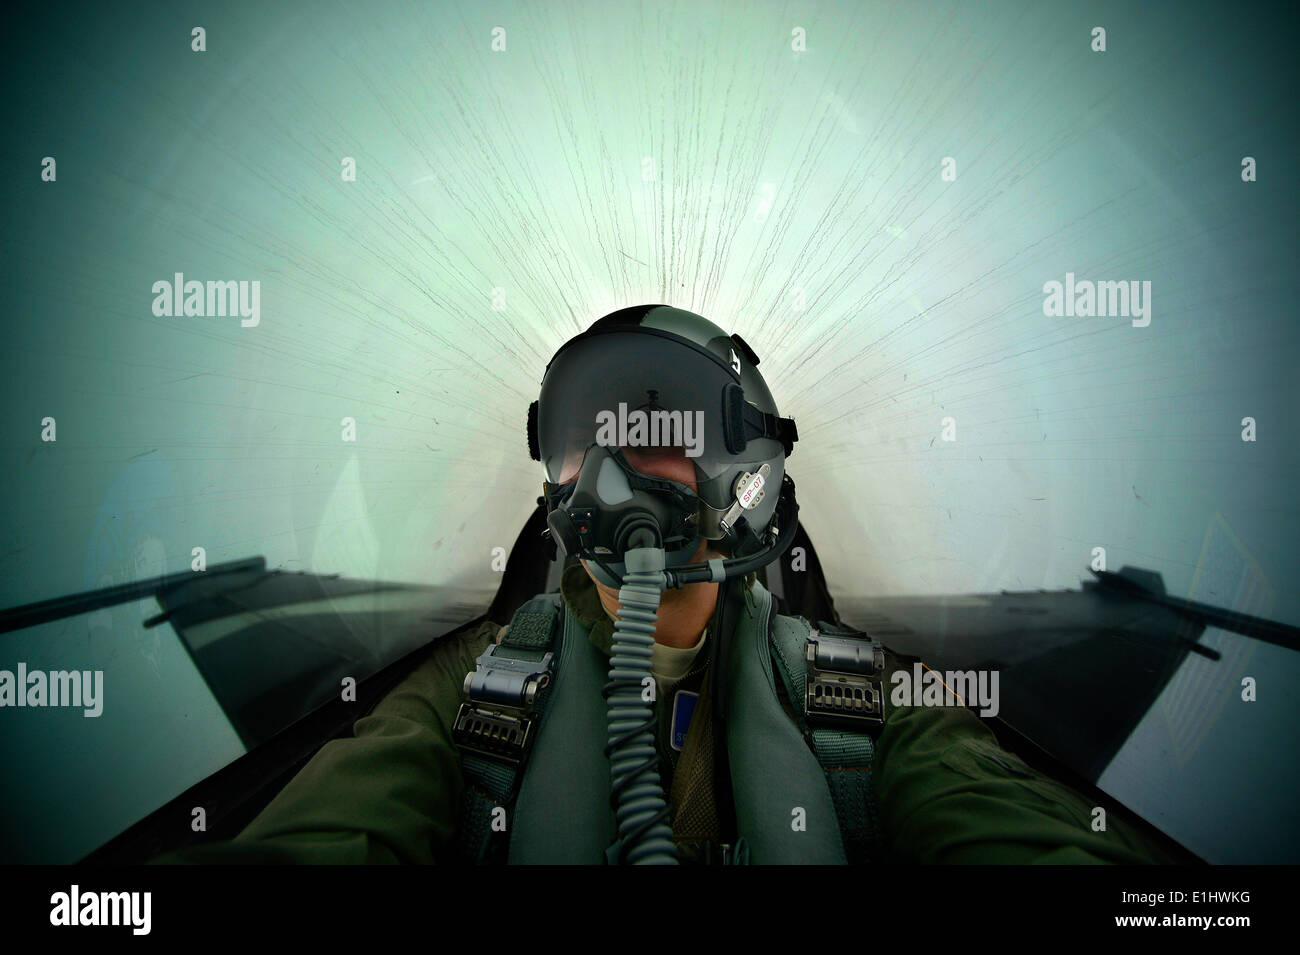 Air Combat Stock Photos & Air Combat Stock Images - Alamy